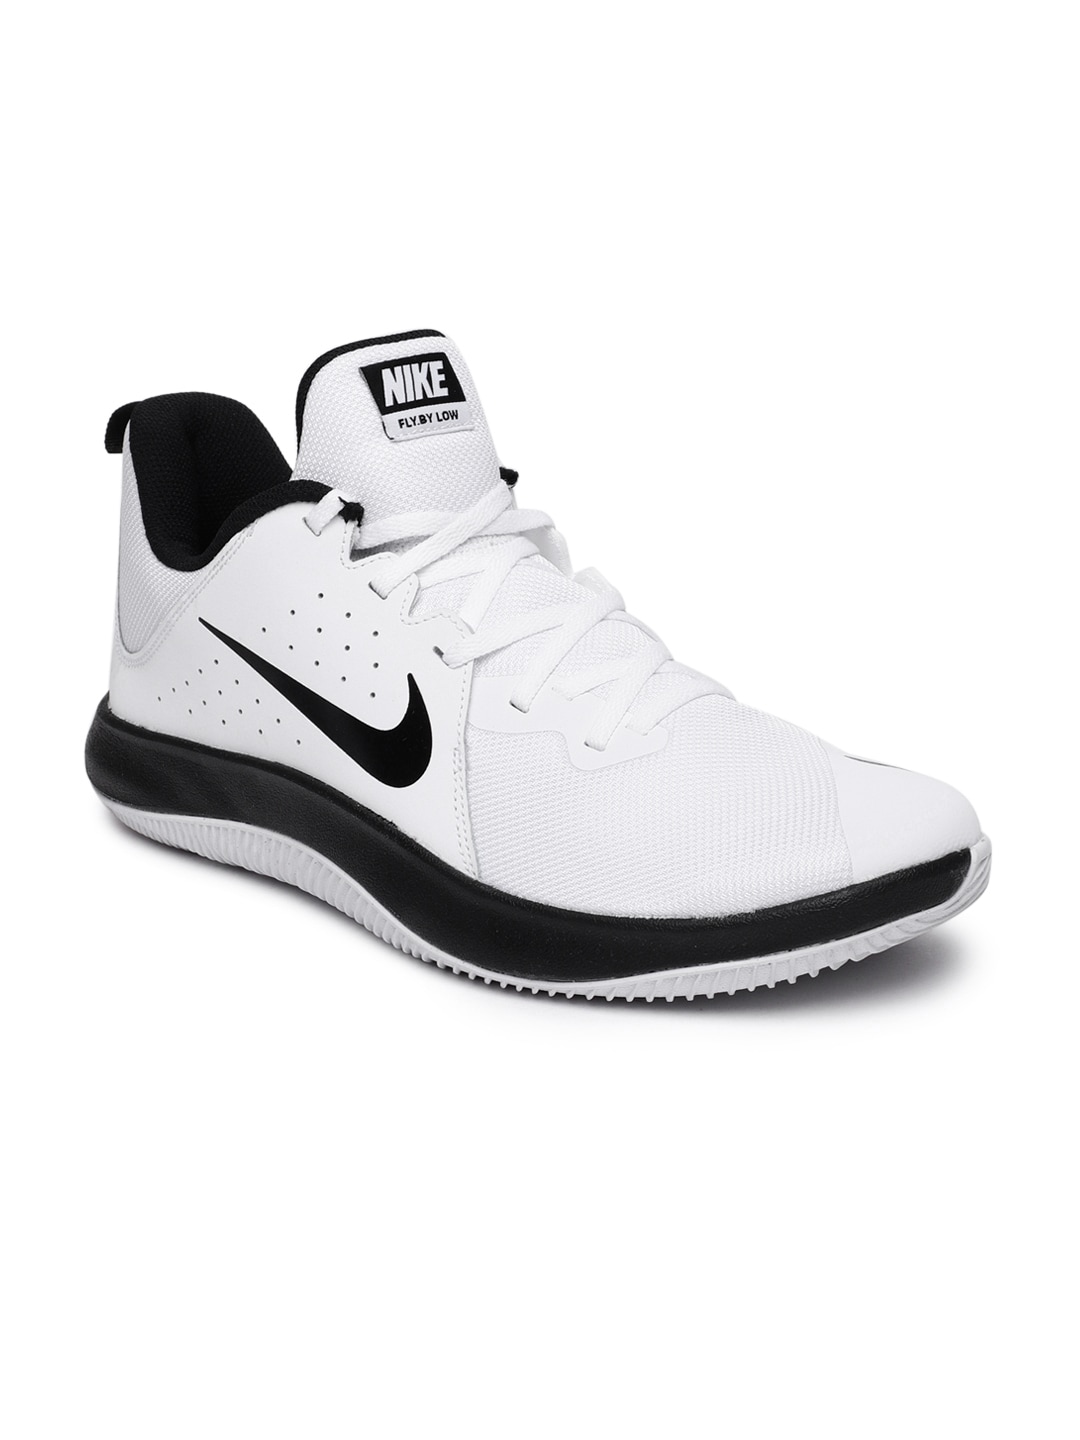 b21248cd0378 Nike Shoes - Buy Nike Shoes for Men